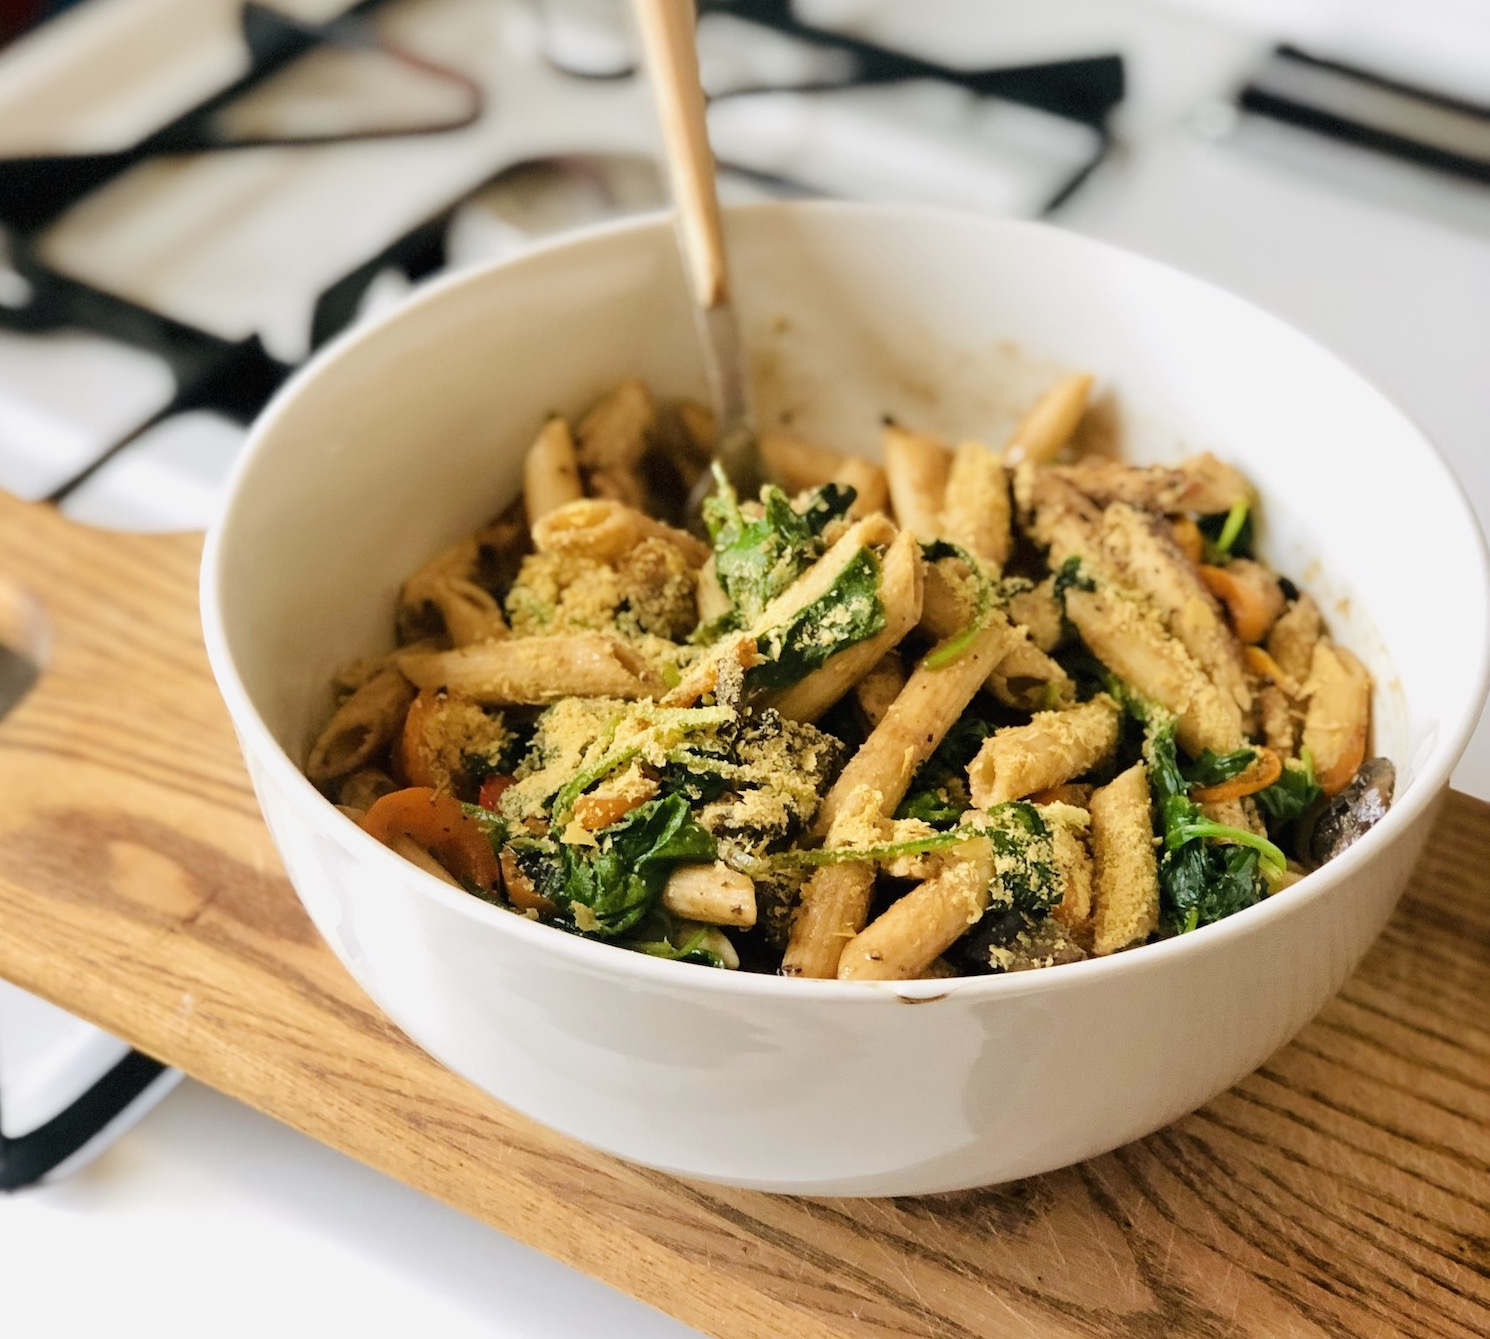 Vegan Protein Packed Balsamic Pasta